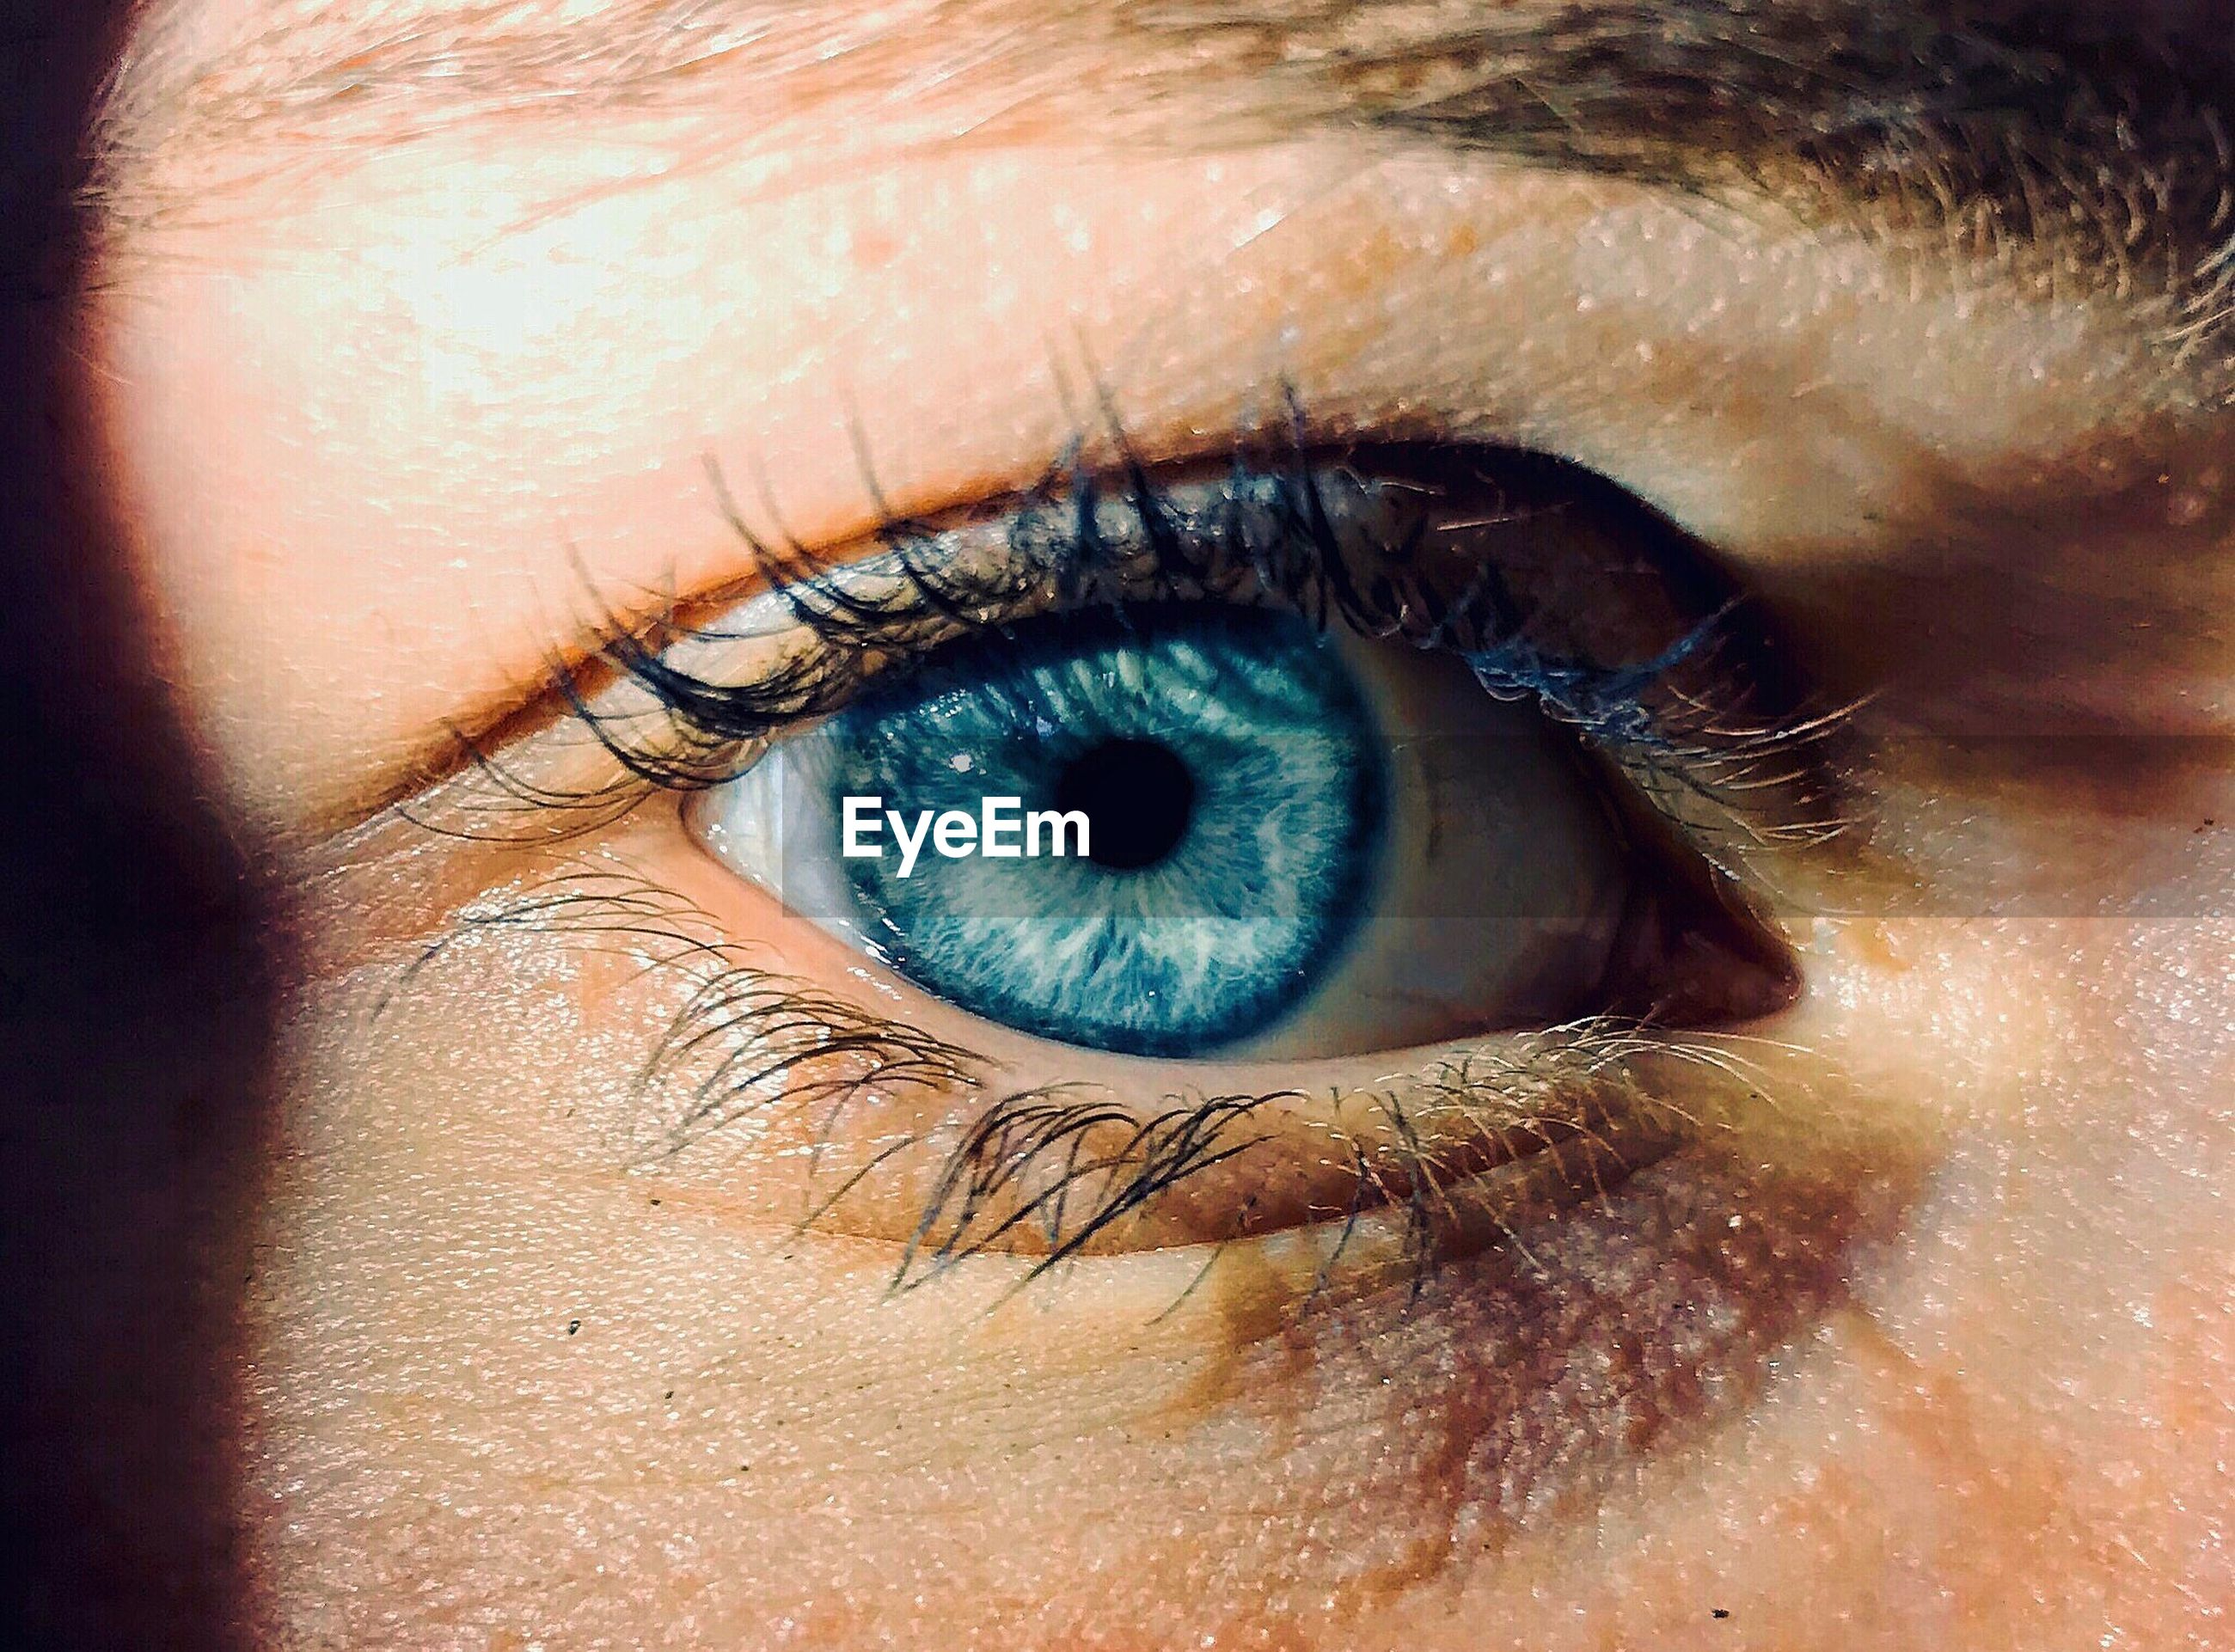 Cropped image of woman with blue eye